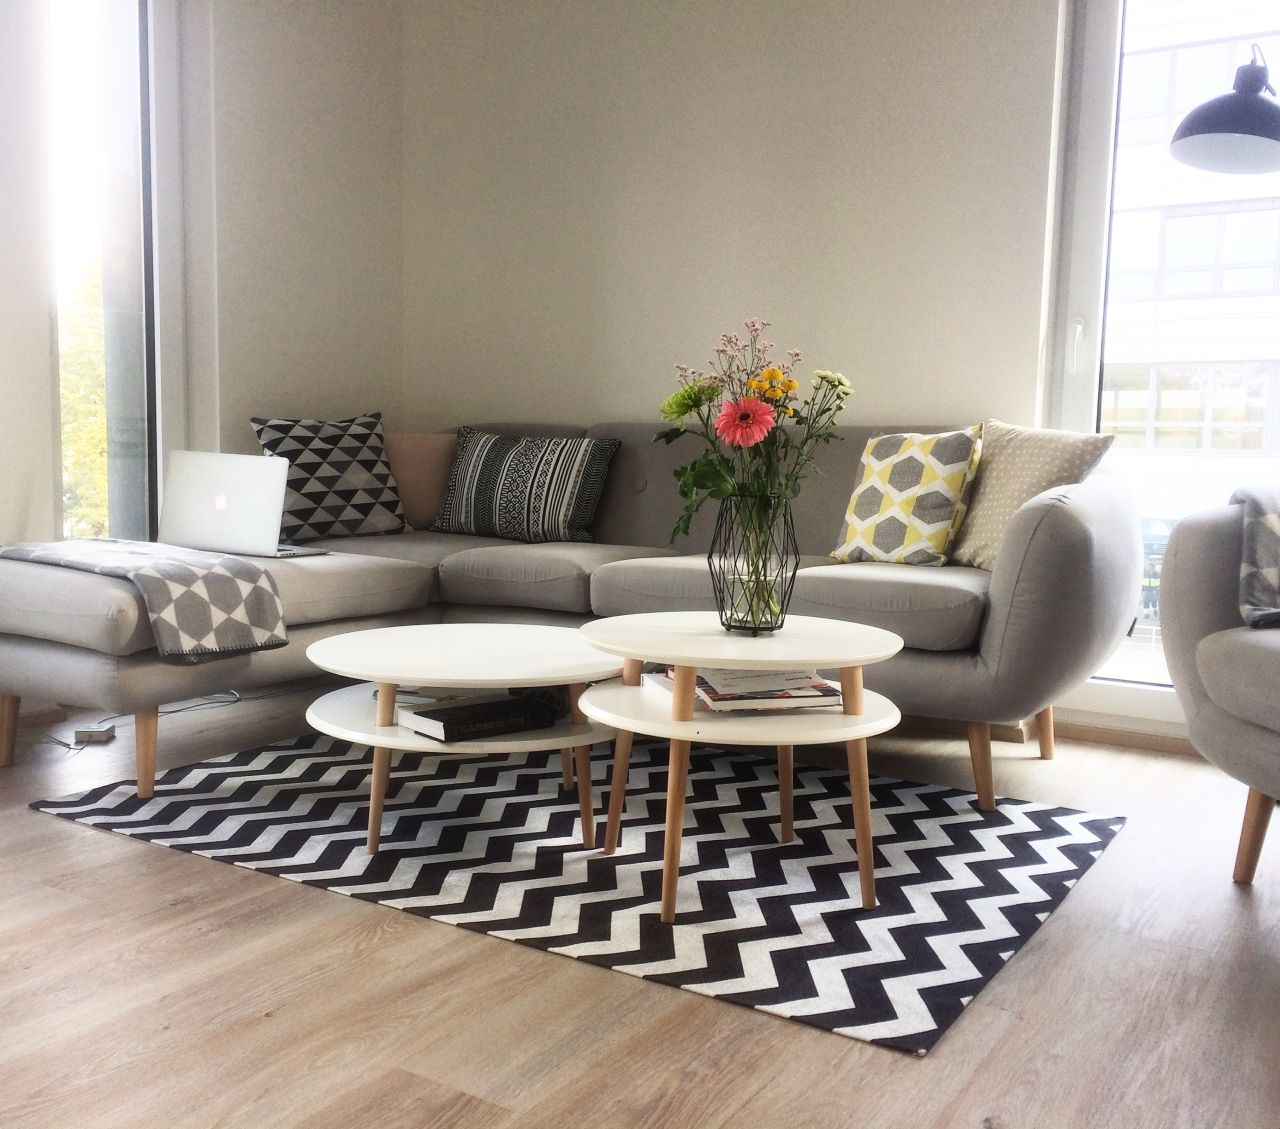 Living room ideas - white coffee table with wooden tapered legs